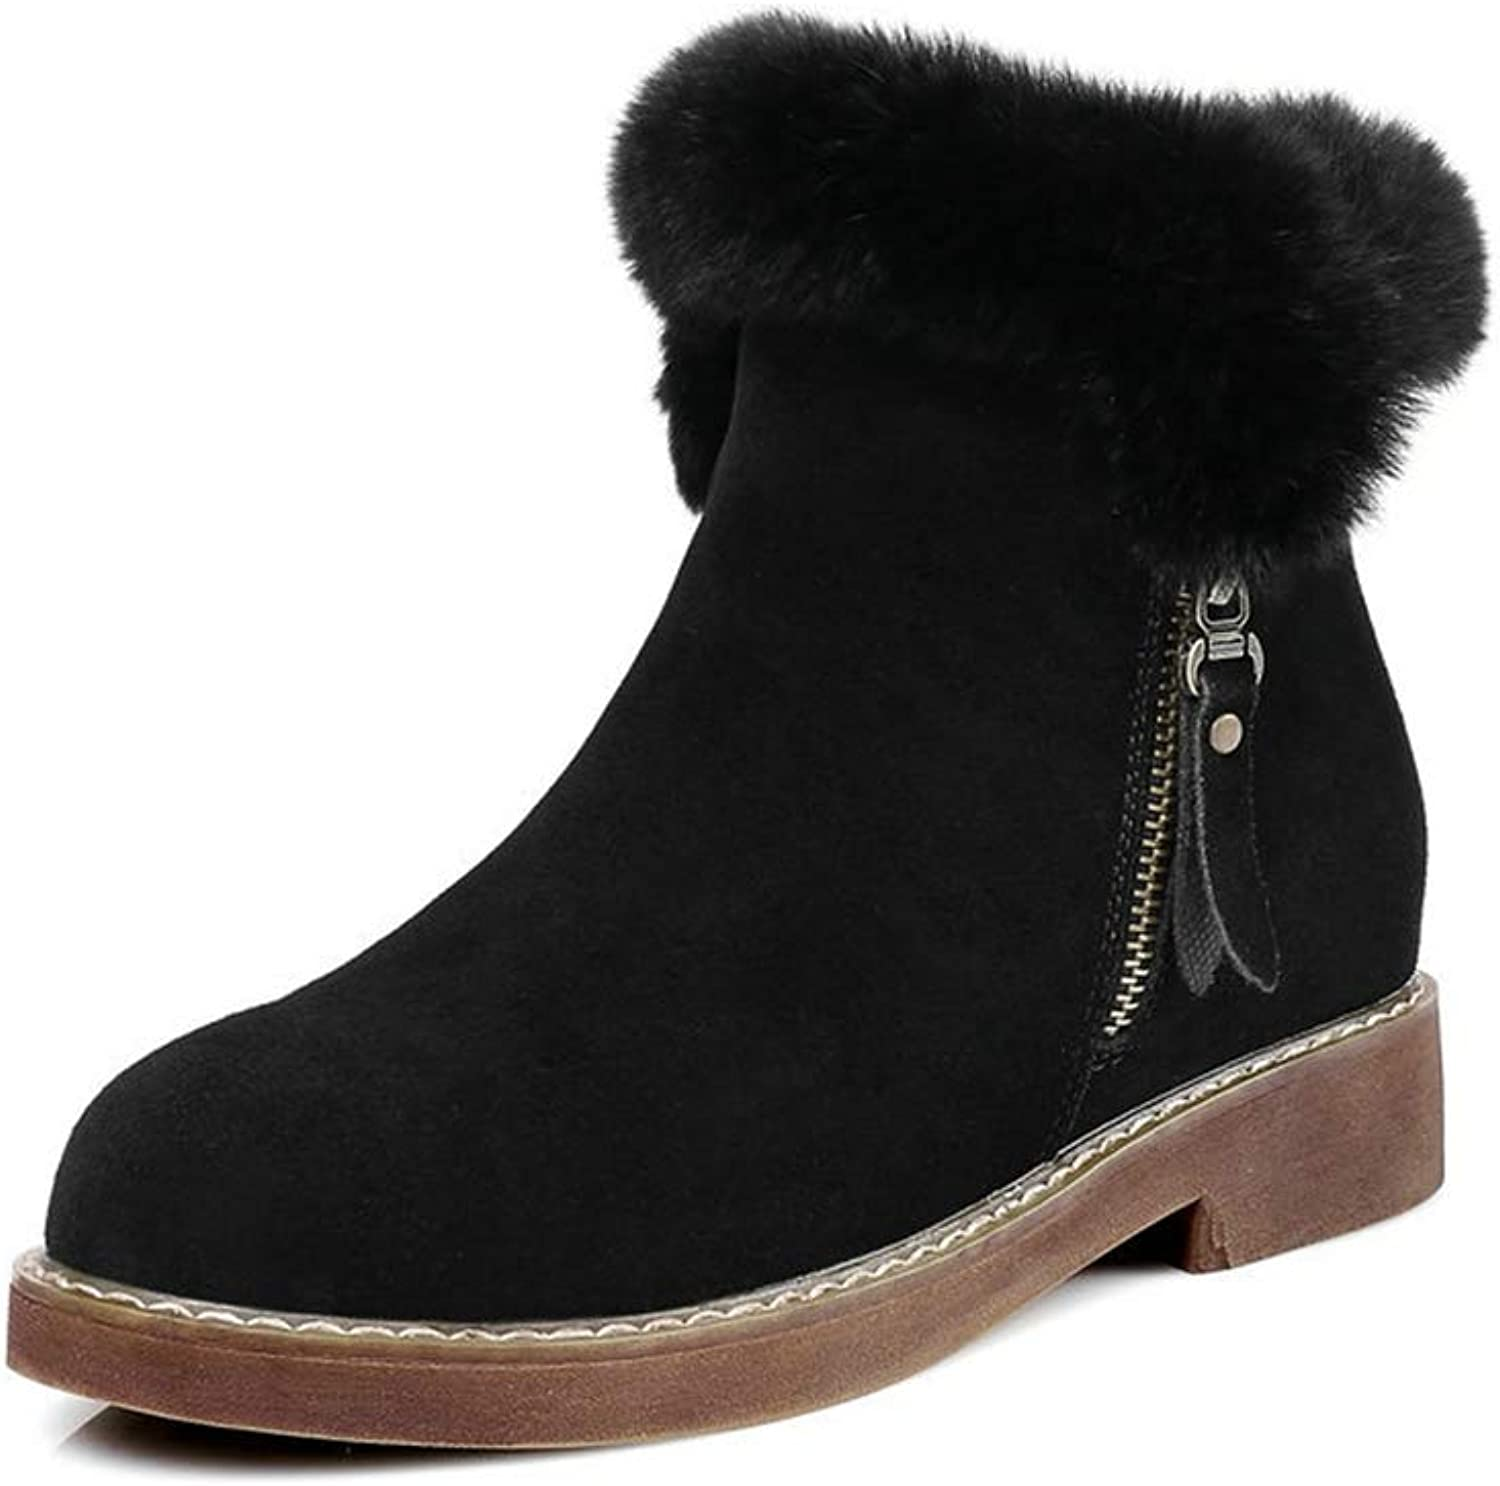 T-JULY Women Snow Boots Fashion Fur Genuine Leather Low Heels Casual Ankle shoes